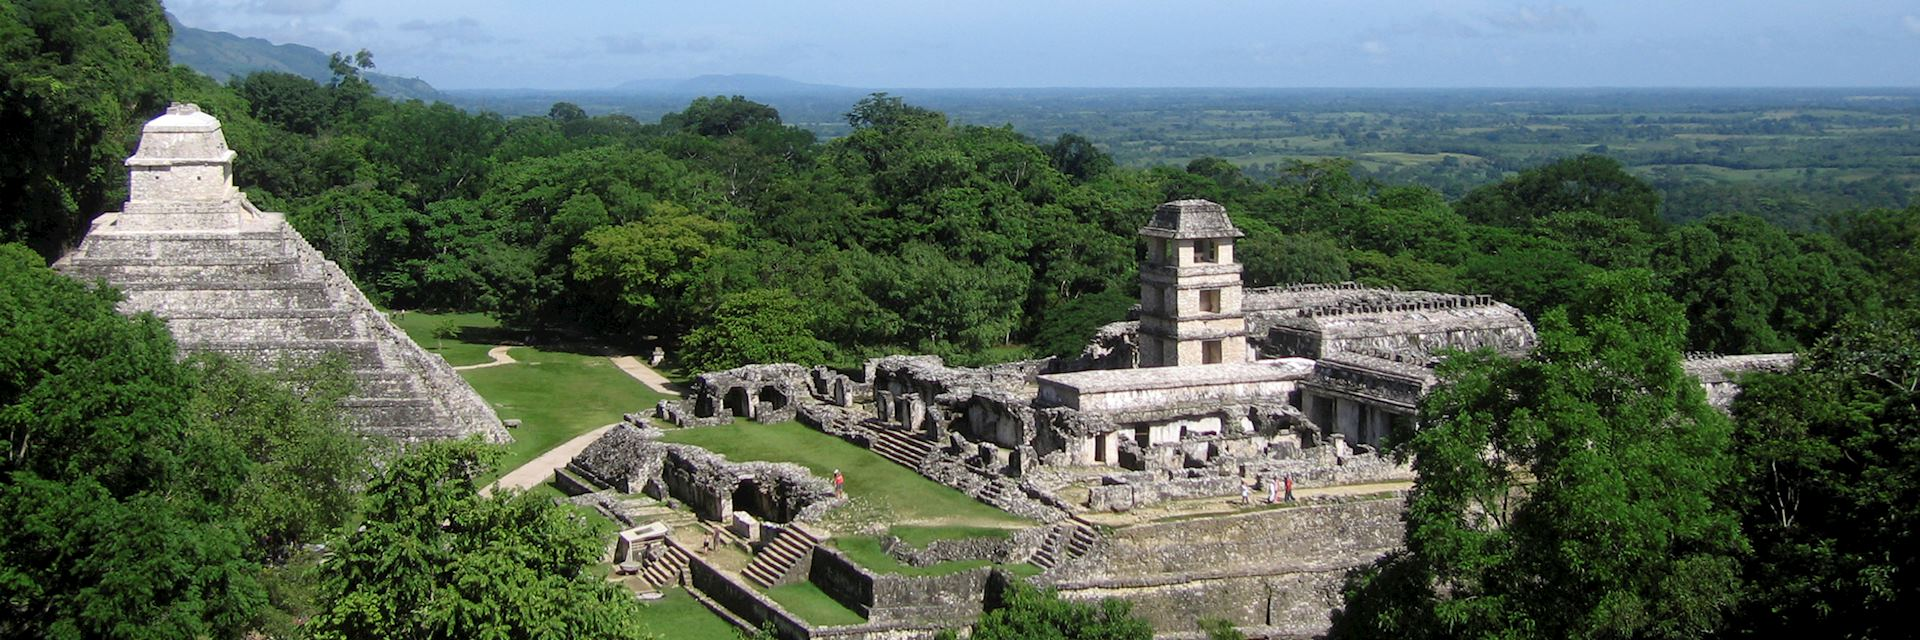 Maya temples of Palenque, Mexico